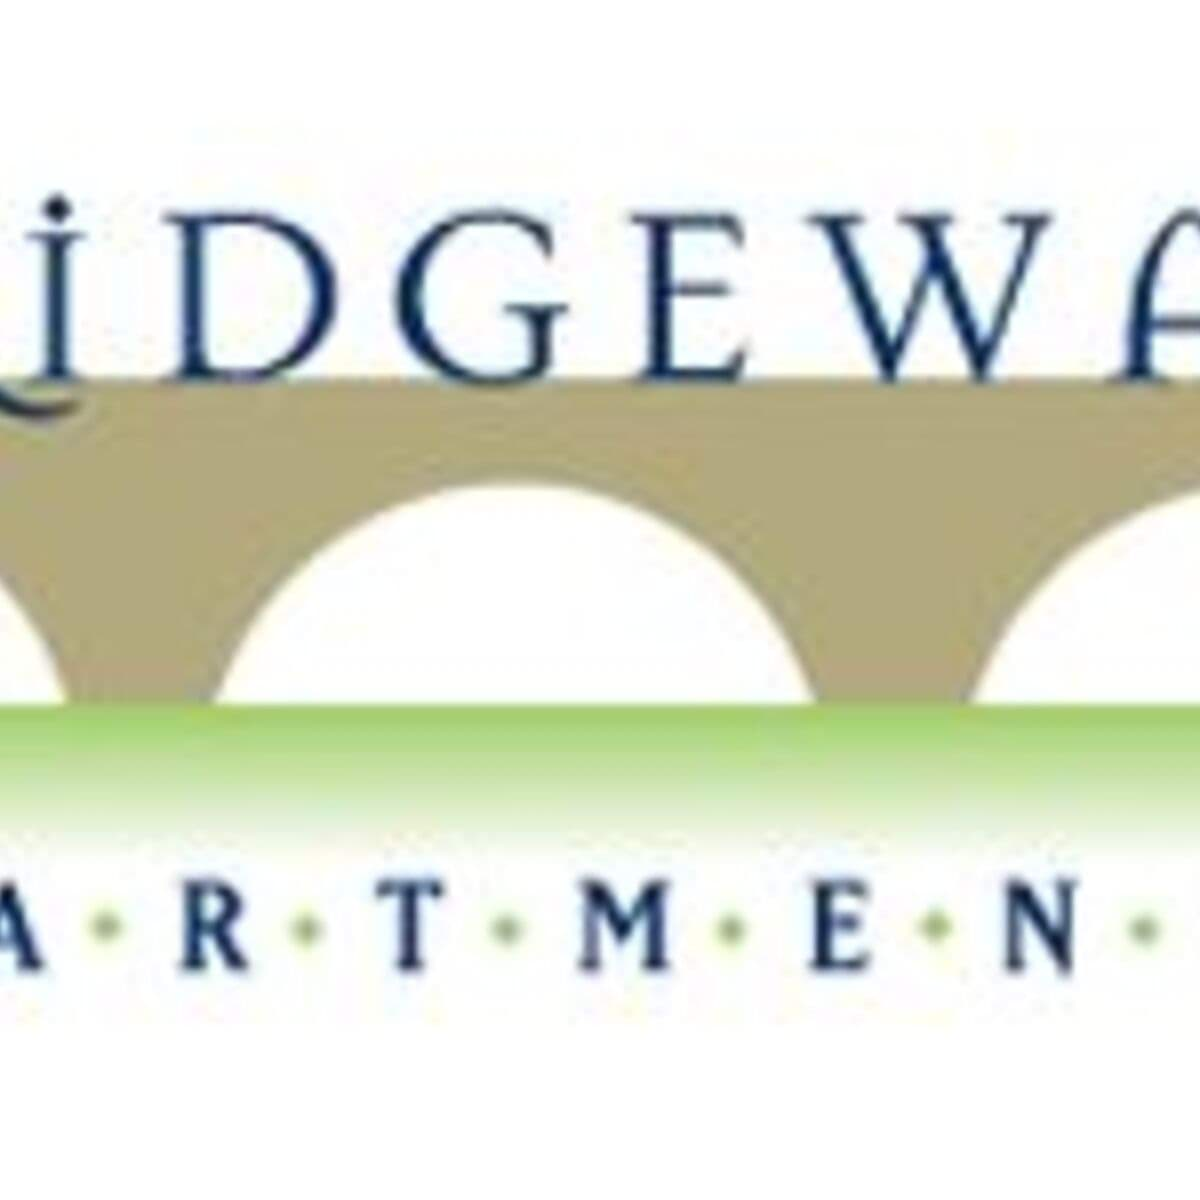 Bridgeway Apartments: Apartments For Rent In Maryville, TN